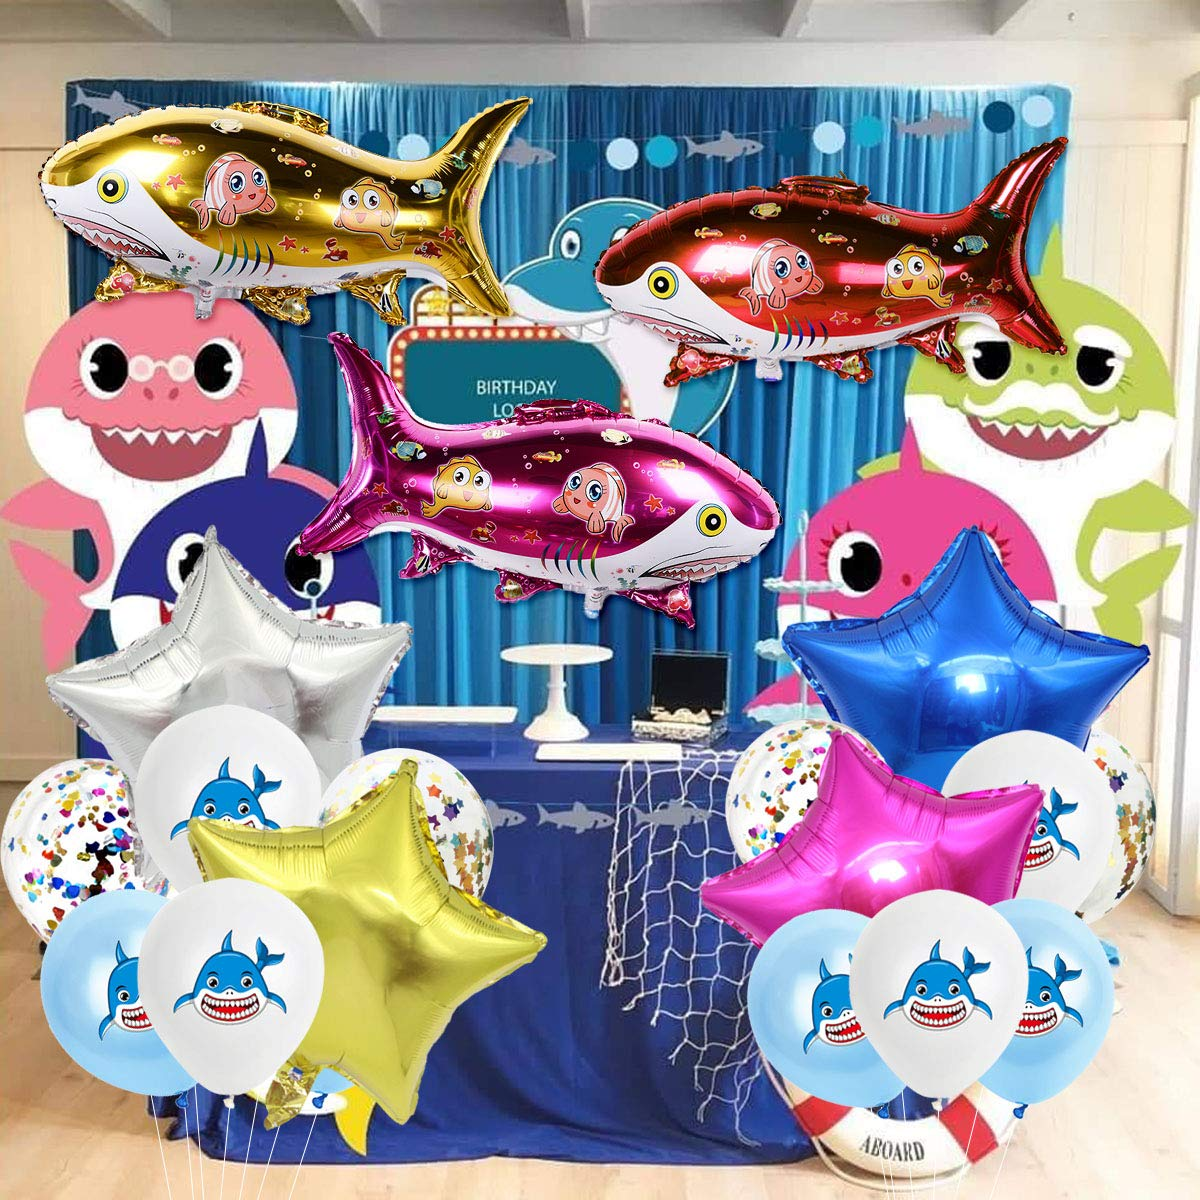 JOYMEMO 28 Piezas de Globos de tiburón Ocean Baby Cute Shark Party Decoration for Birthday Baby Shower: Amazon.es: Juguetes y juegos